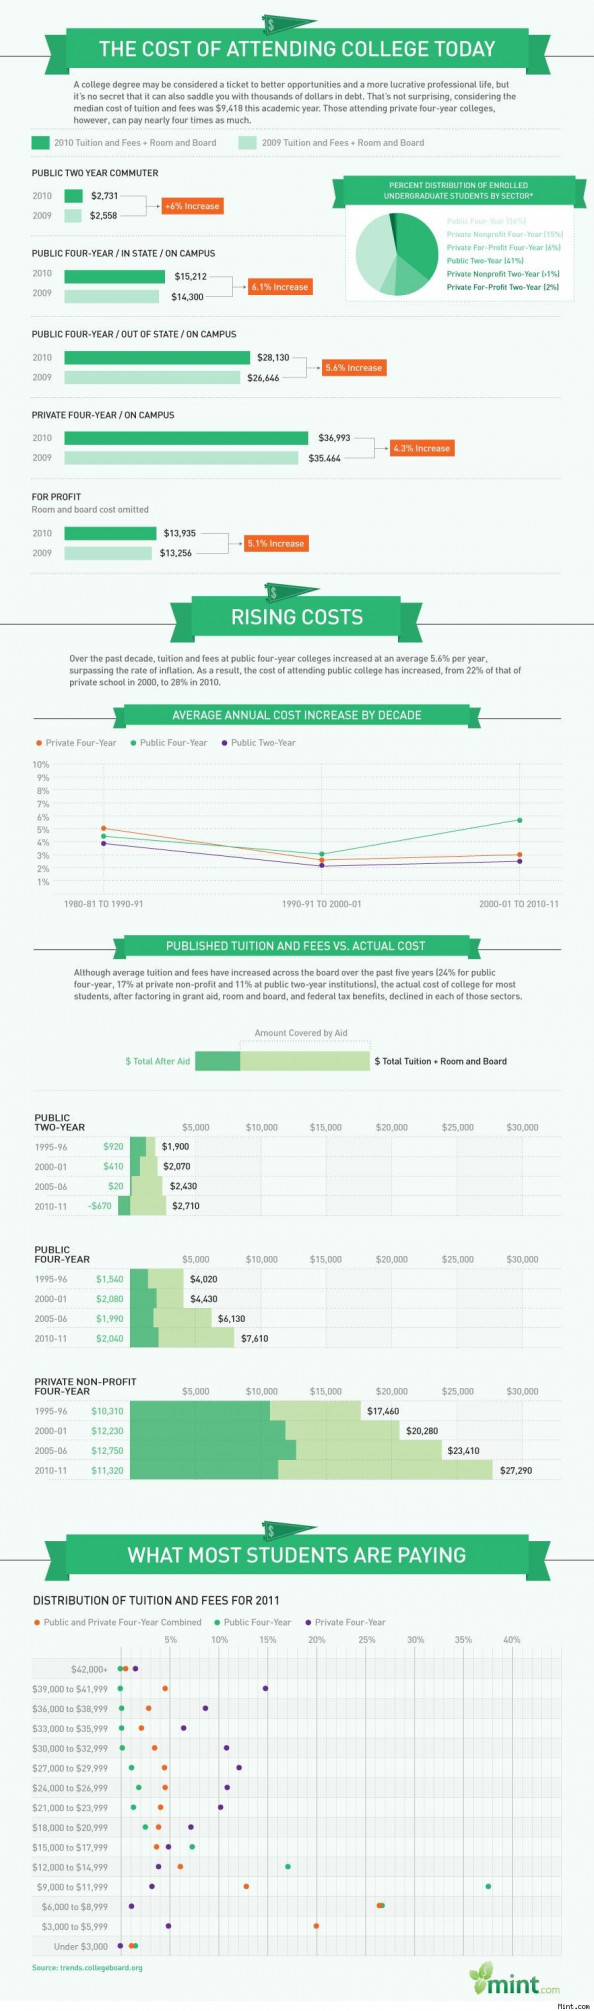 The Cost of Attending College Today Infographic